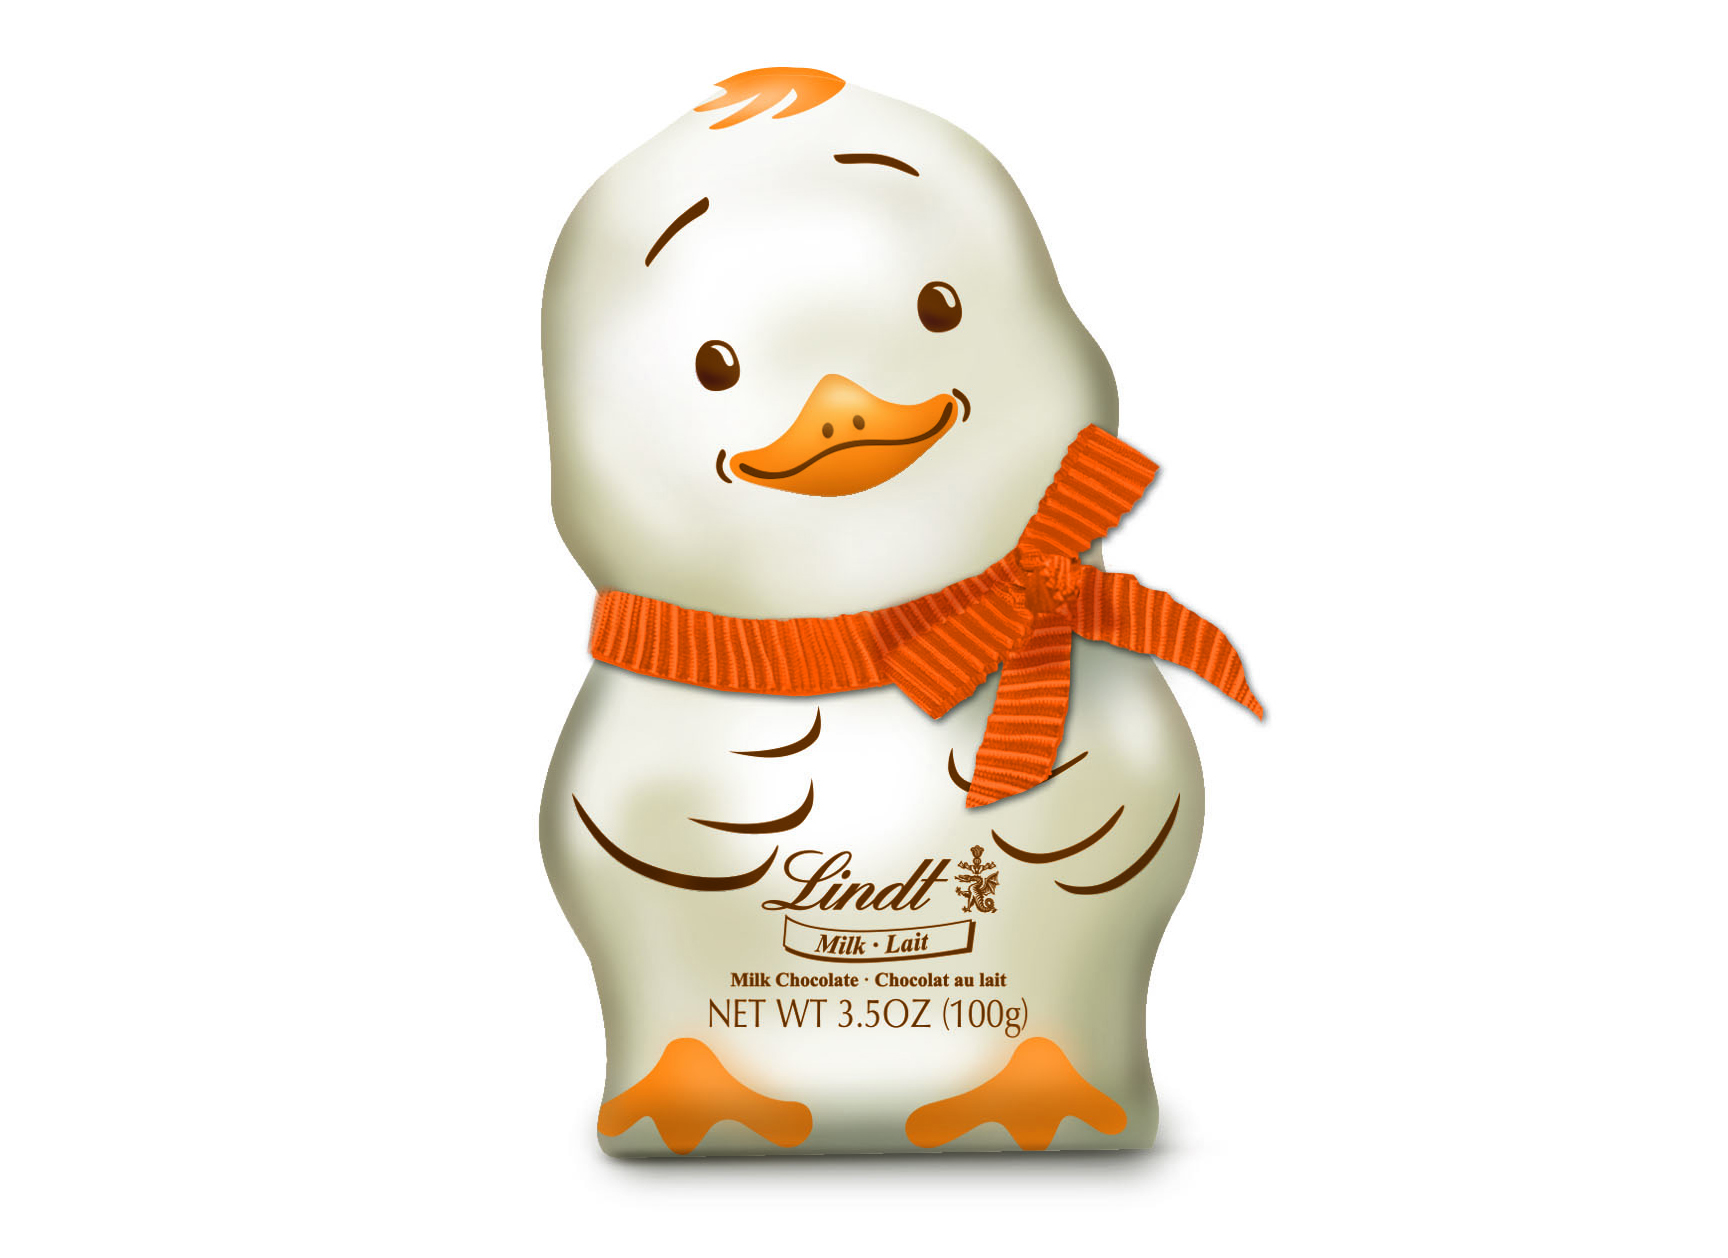 Lindt Chick Hollow Figure